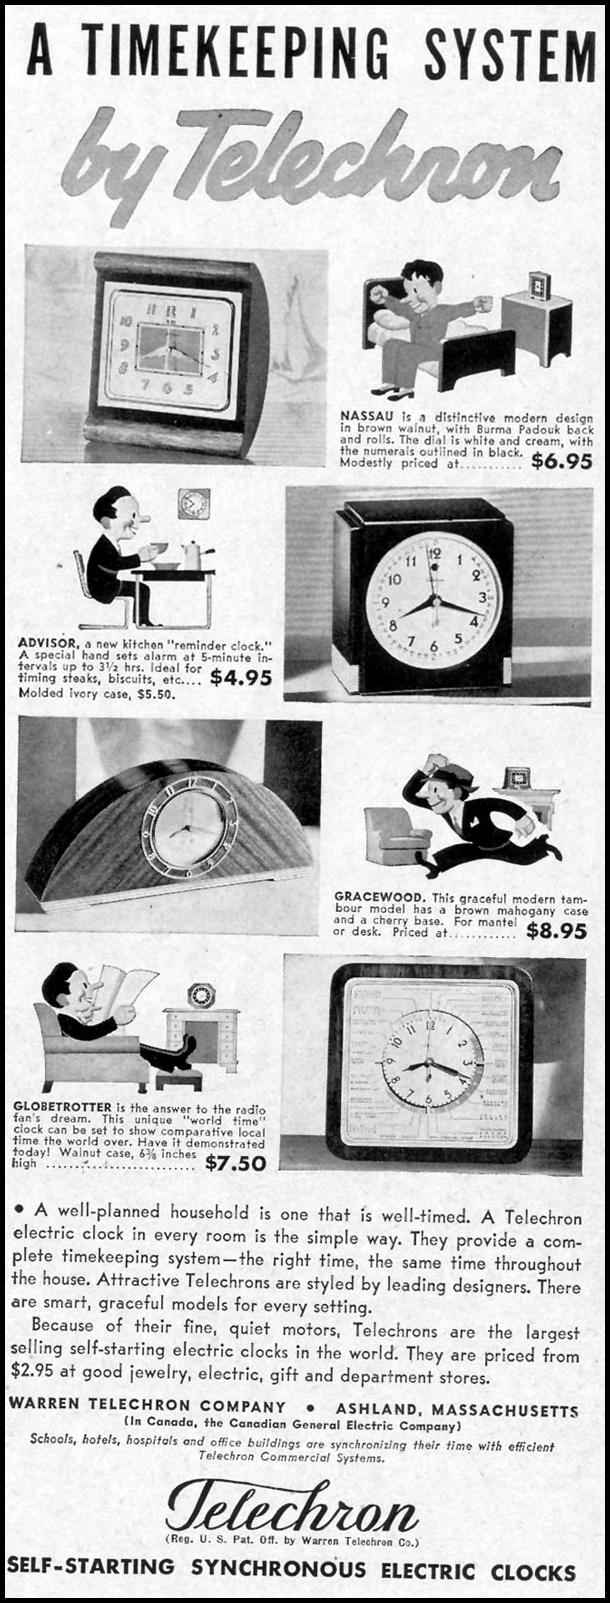 TELECHRON SELF-STARTING SYNCHRONOUS ELECTIC CLOCKS LIFE 09/13/1937 p. 81